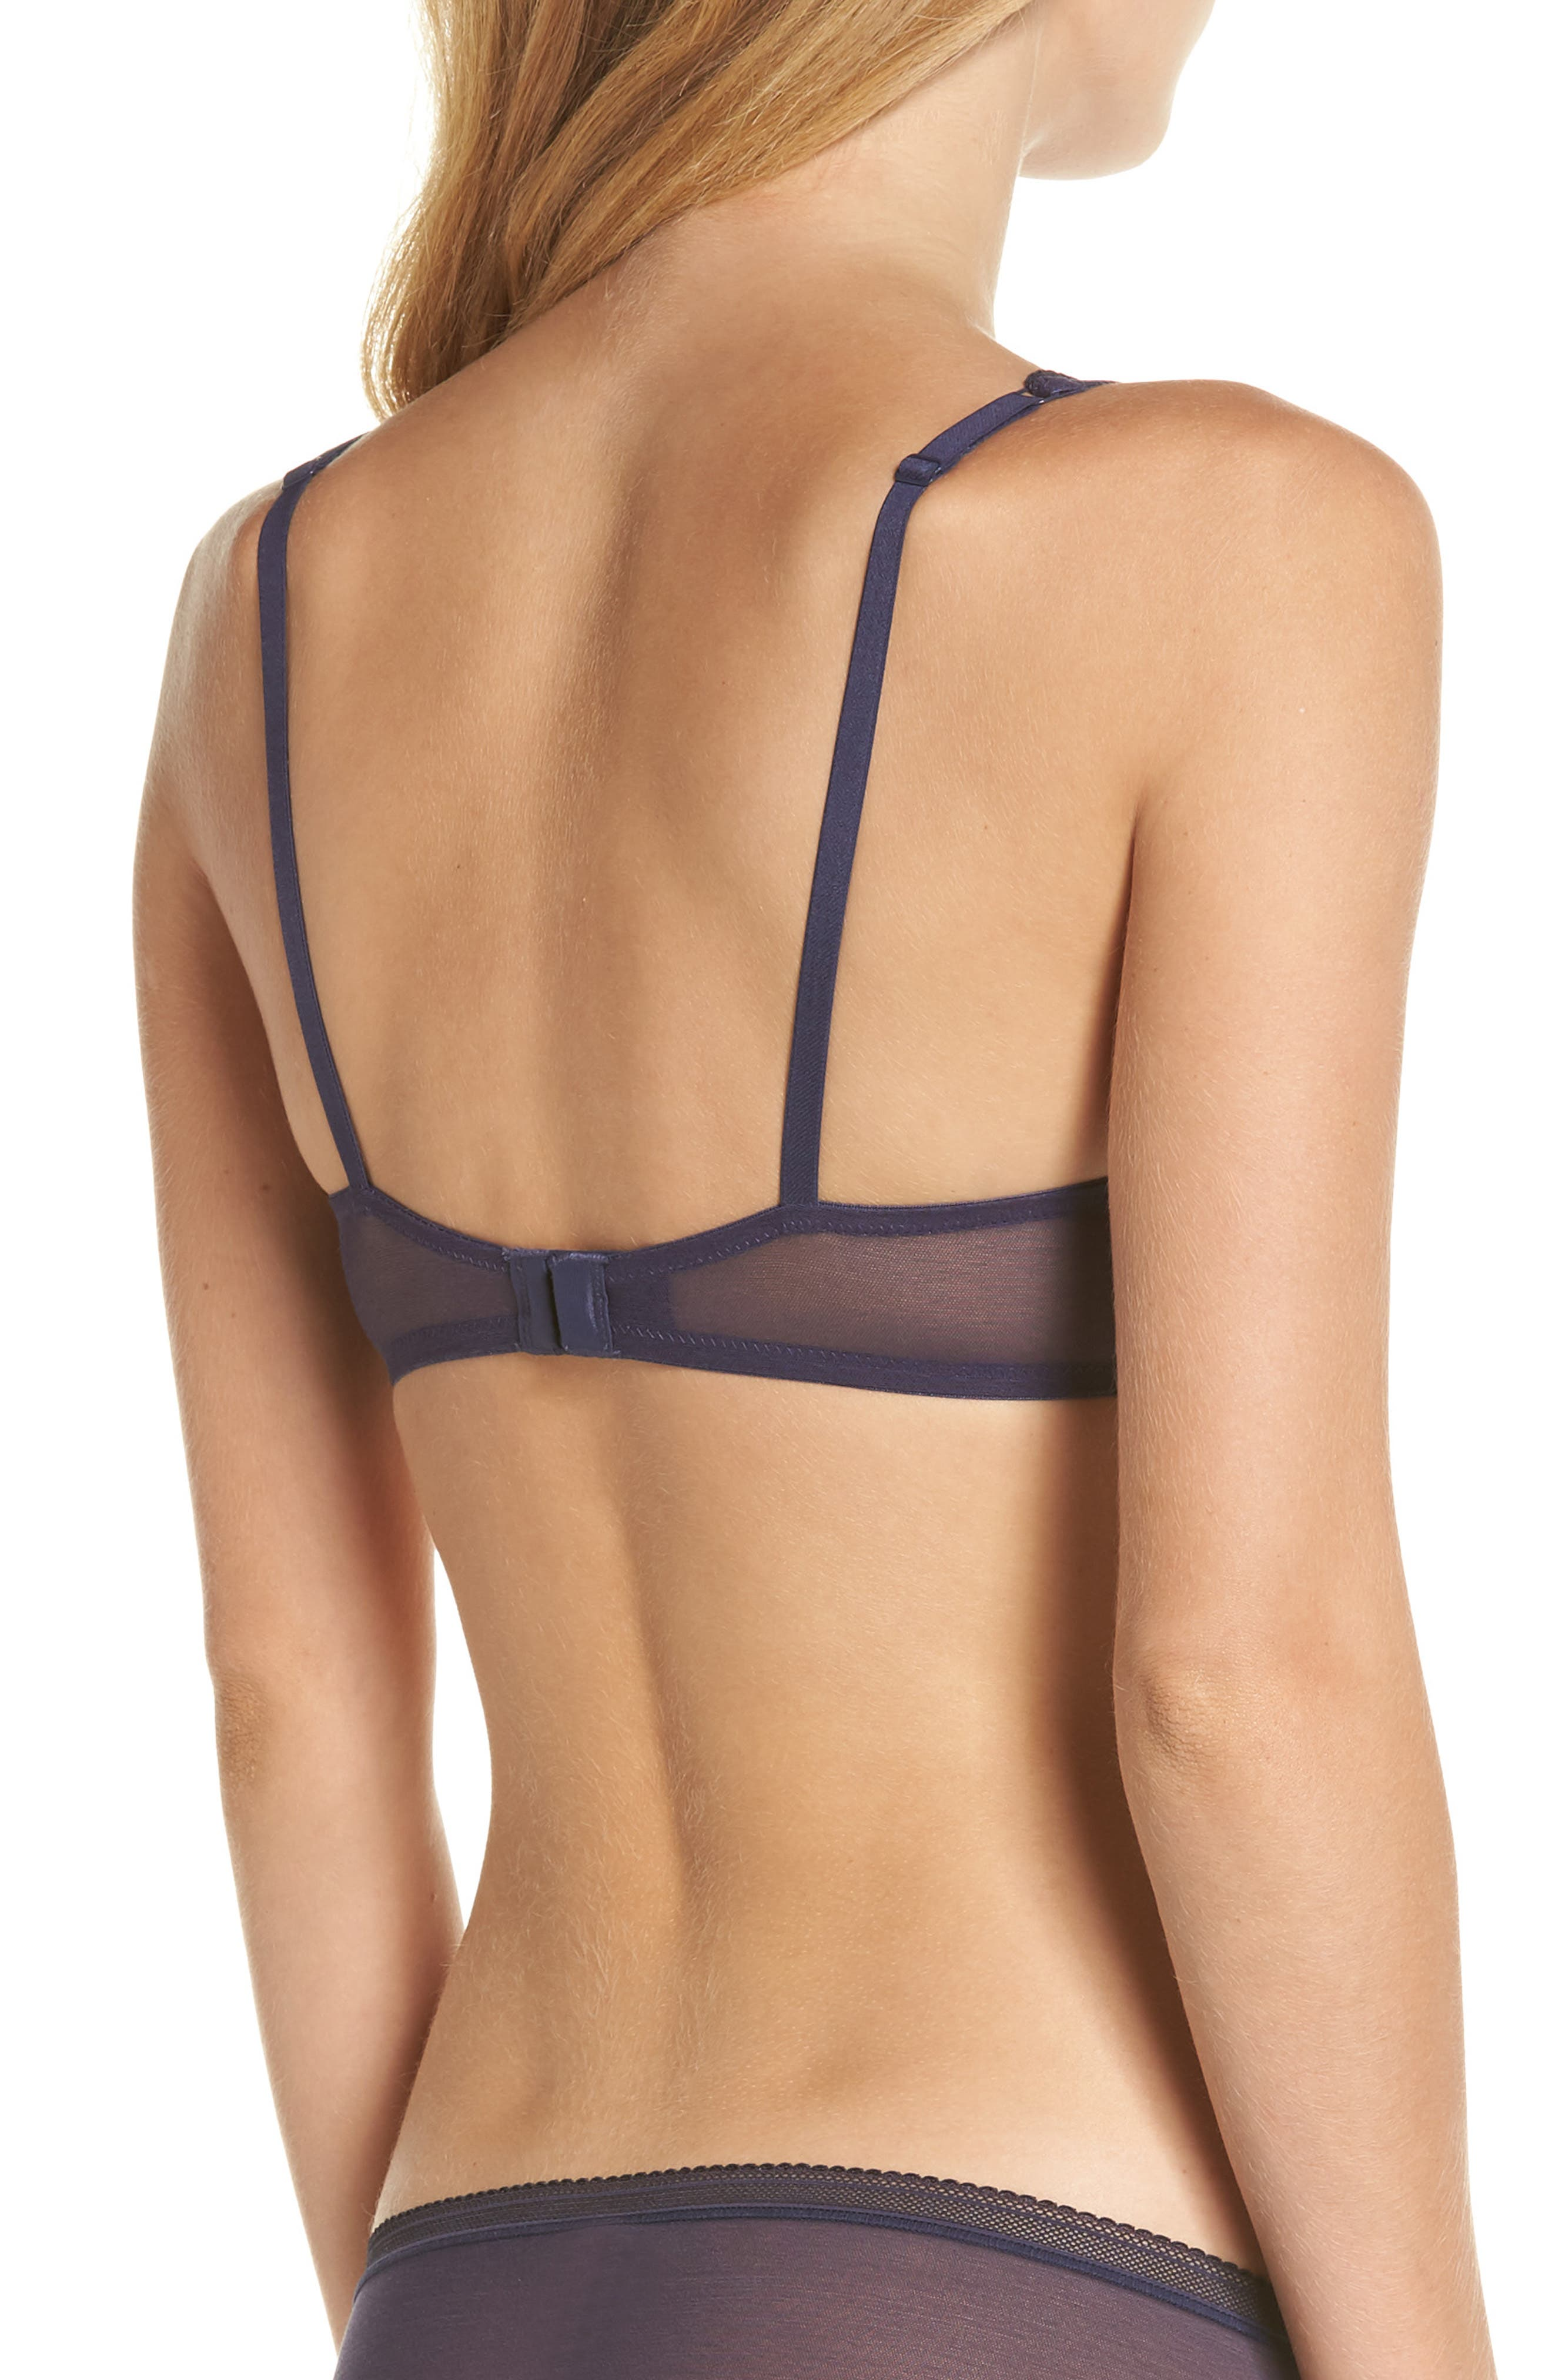 Mesh Underwire Bra,                             Alternate thumbnail 2, color,                             Navy